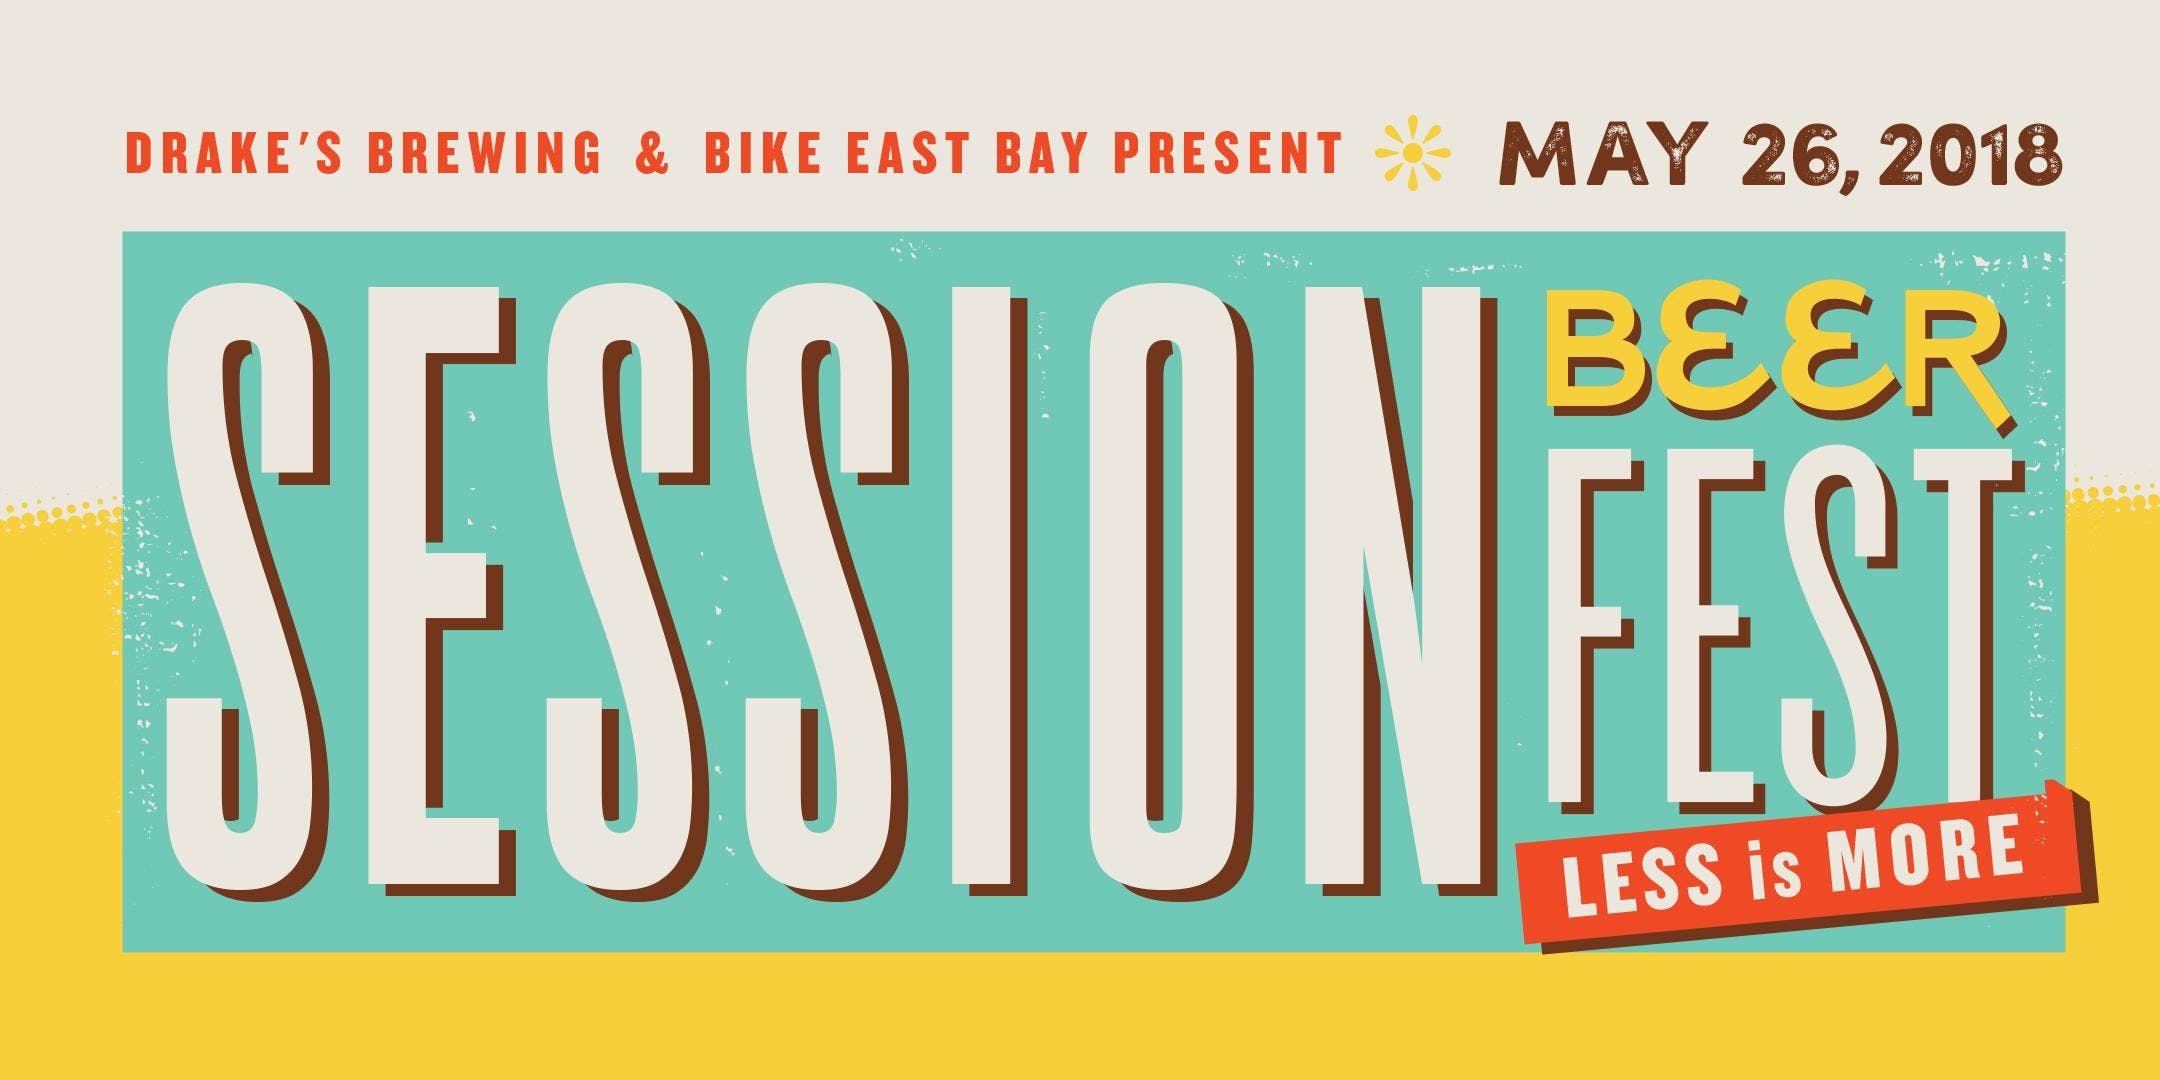 6th Annual Session Beer Fest at Jack London Square, Oakland